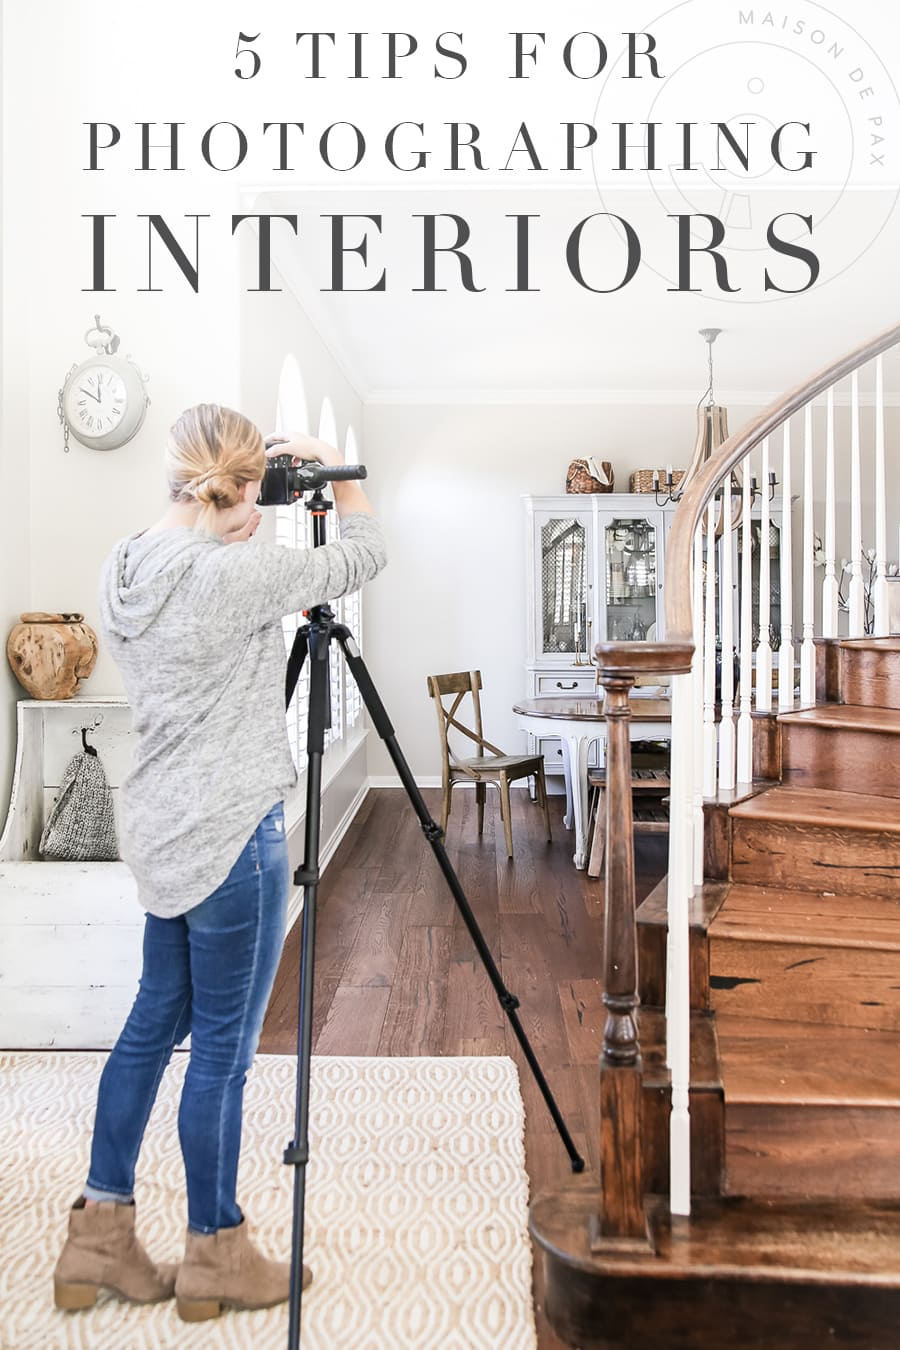 woman taking pictures of dining room with overlay that reads: 5 tips for photographing interiors